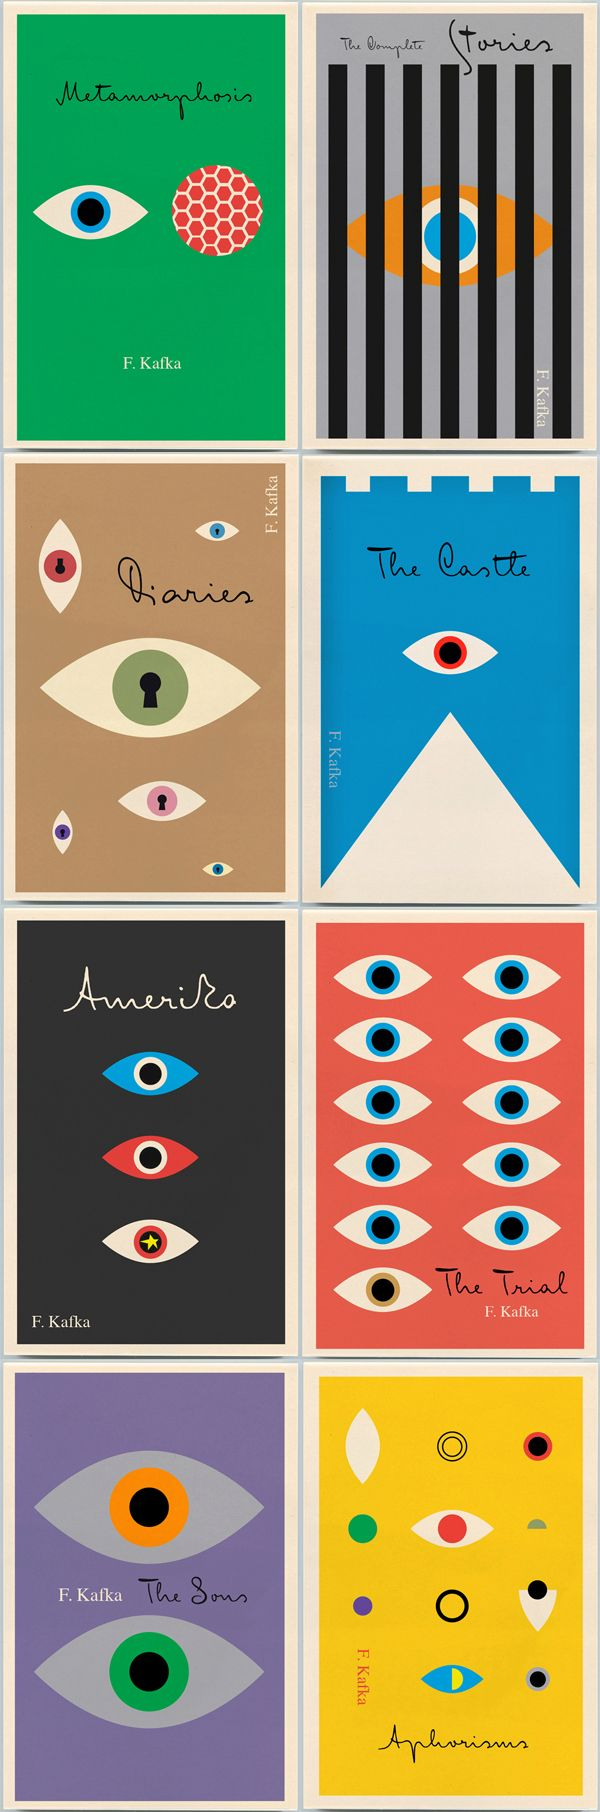 Peter Mendelsund's Kafka backlist, which we first told you about here, published by Schocken Books, 2011.